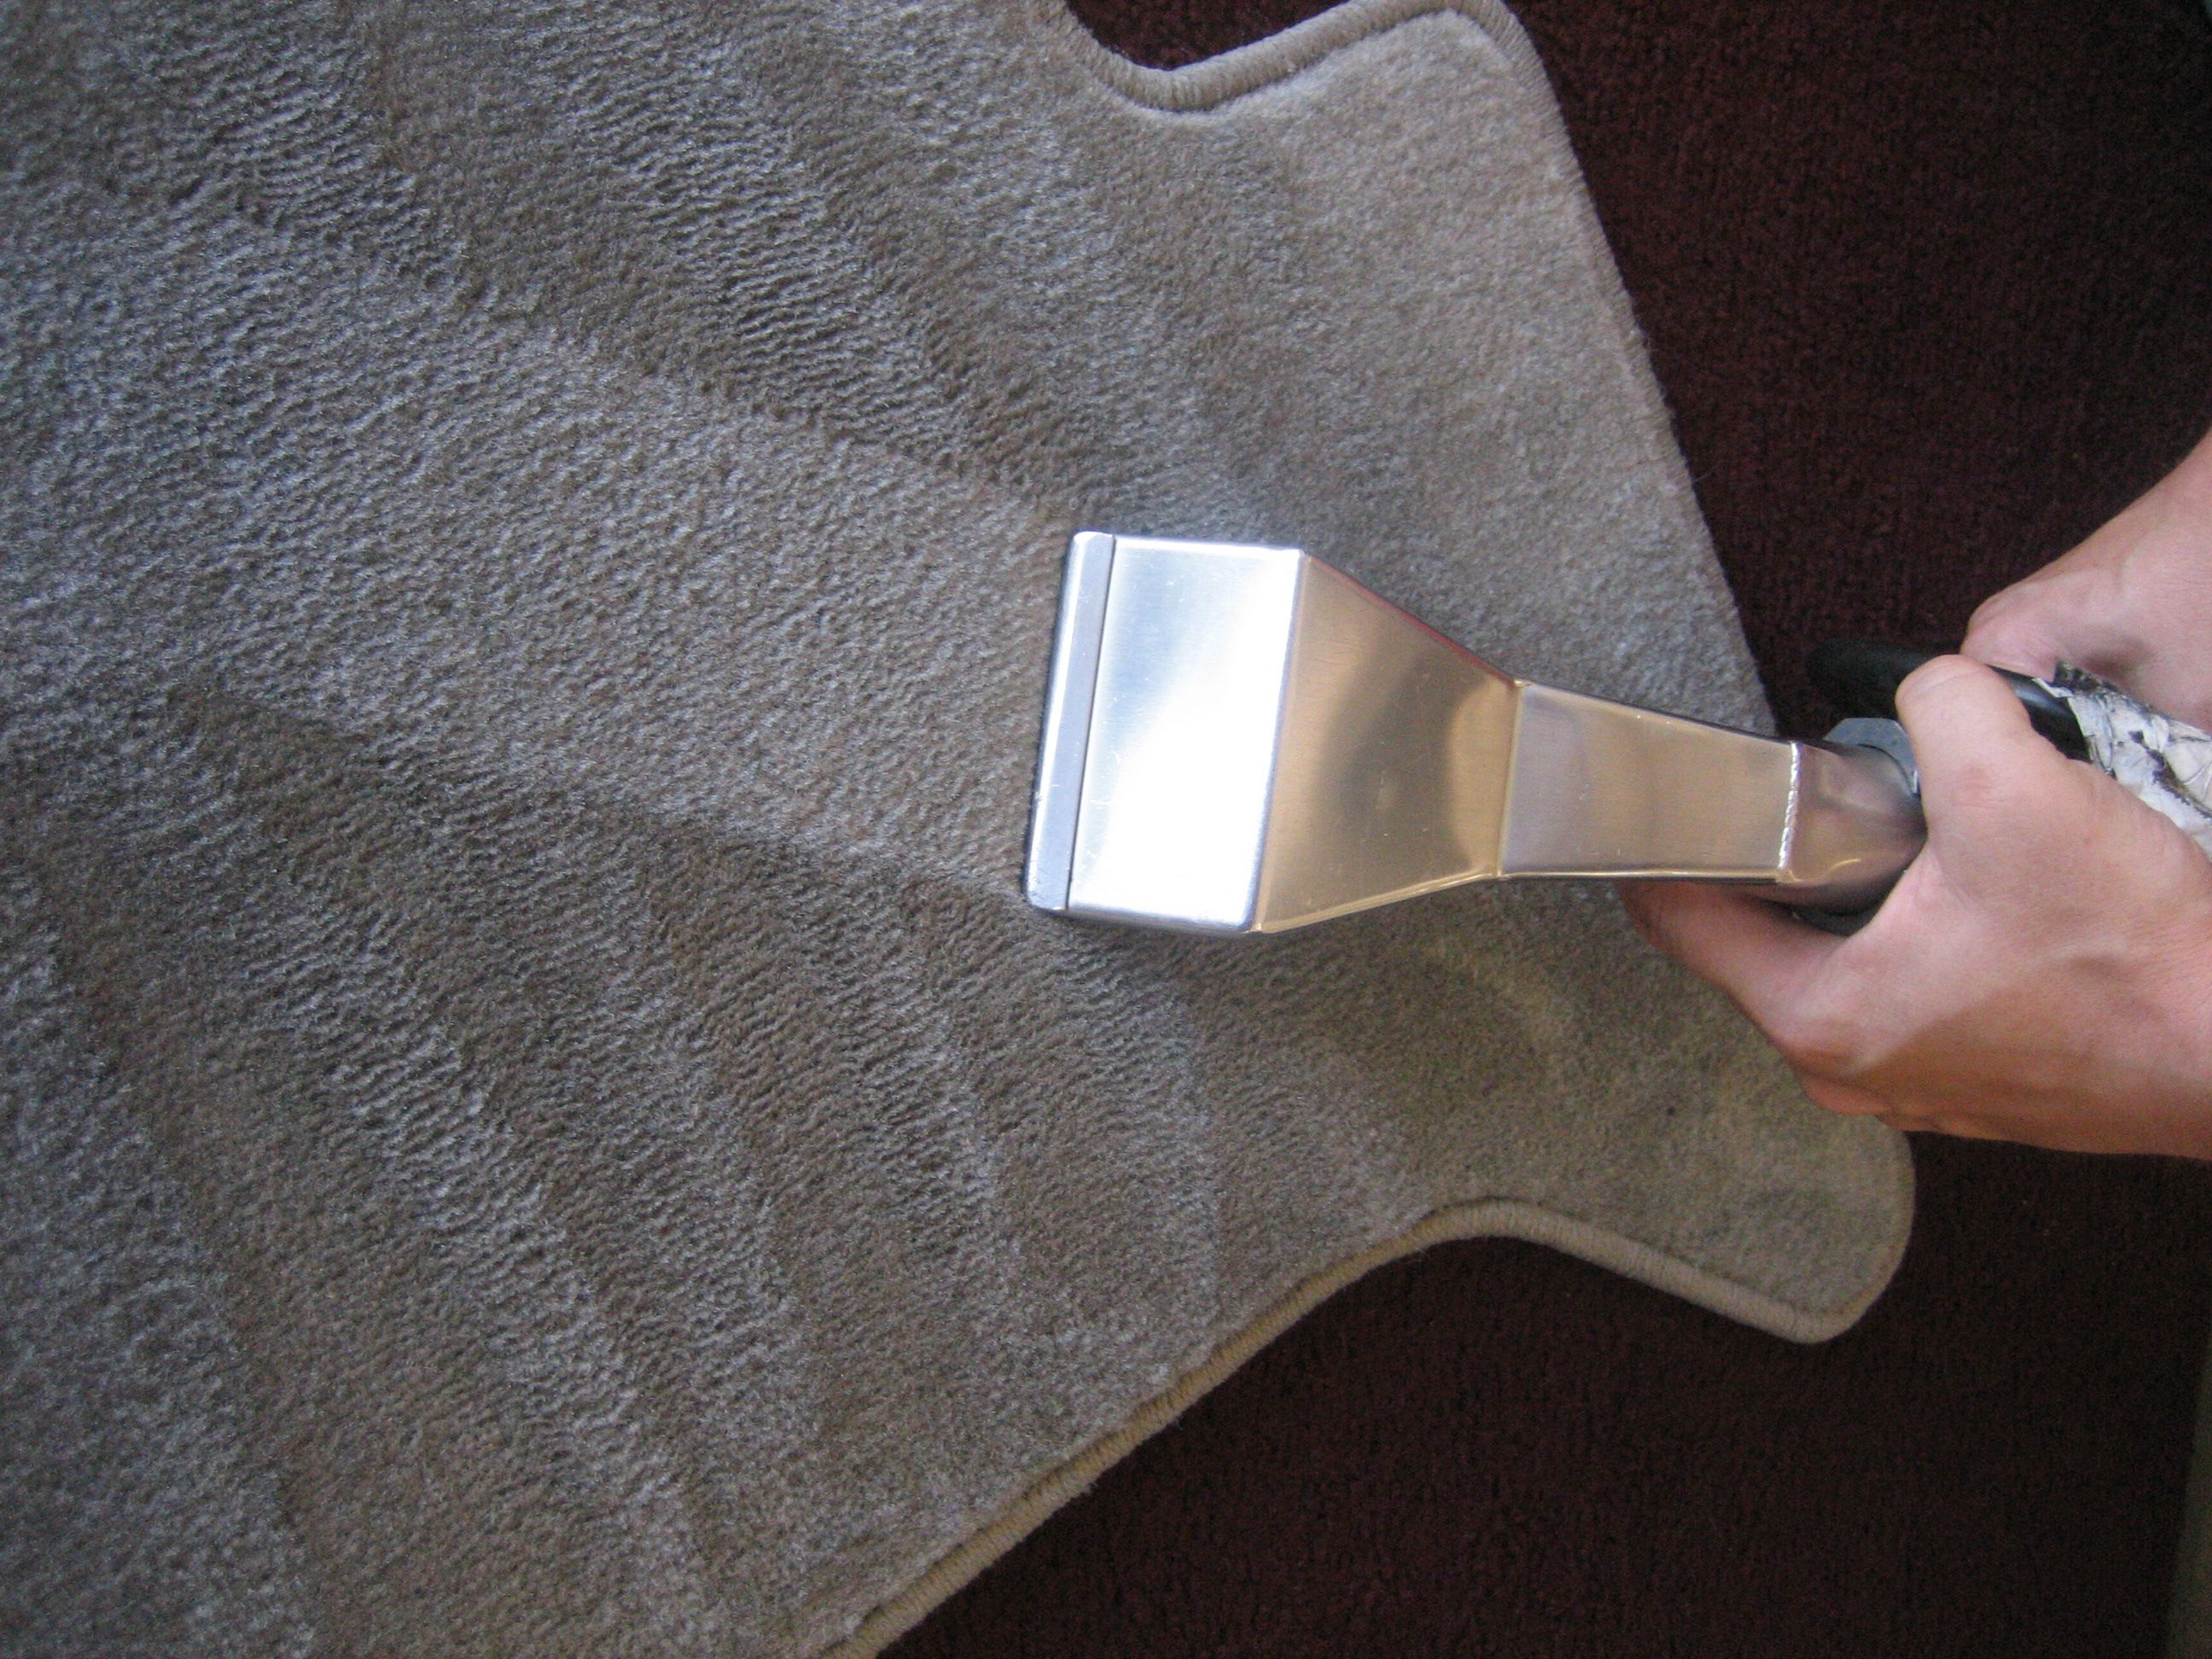 Clean carpet or upholstery stains by applying a foam